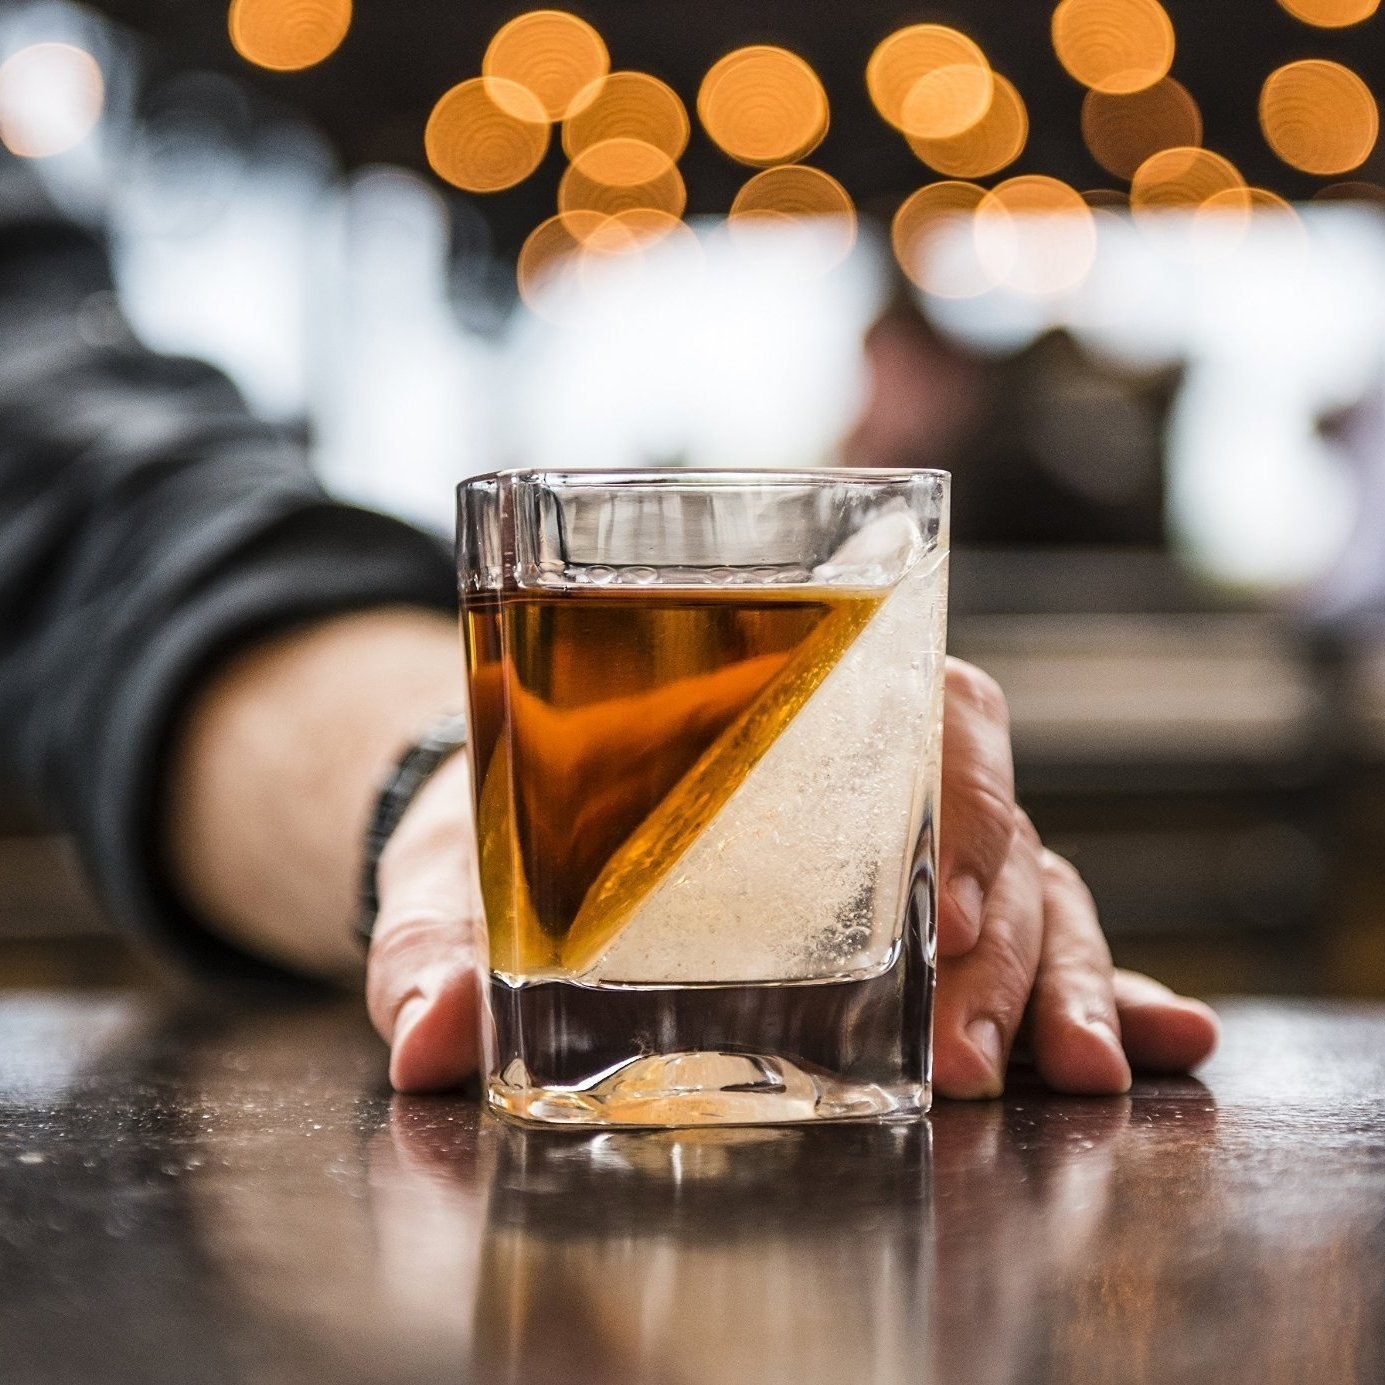 A hand holding the whiskey glass